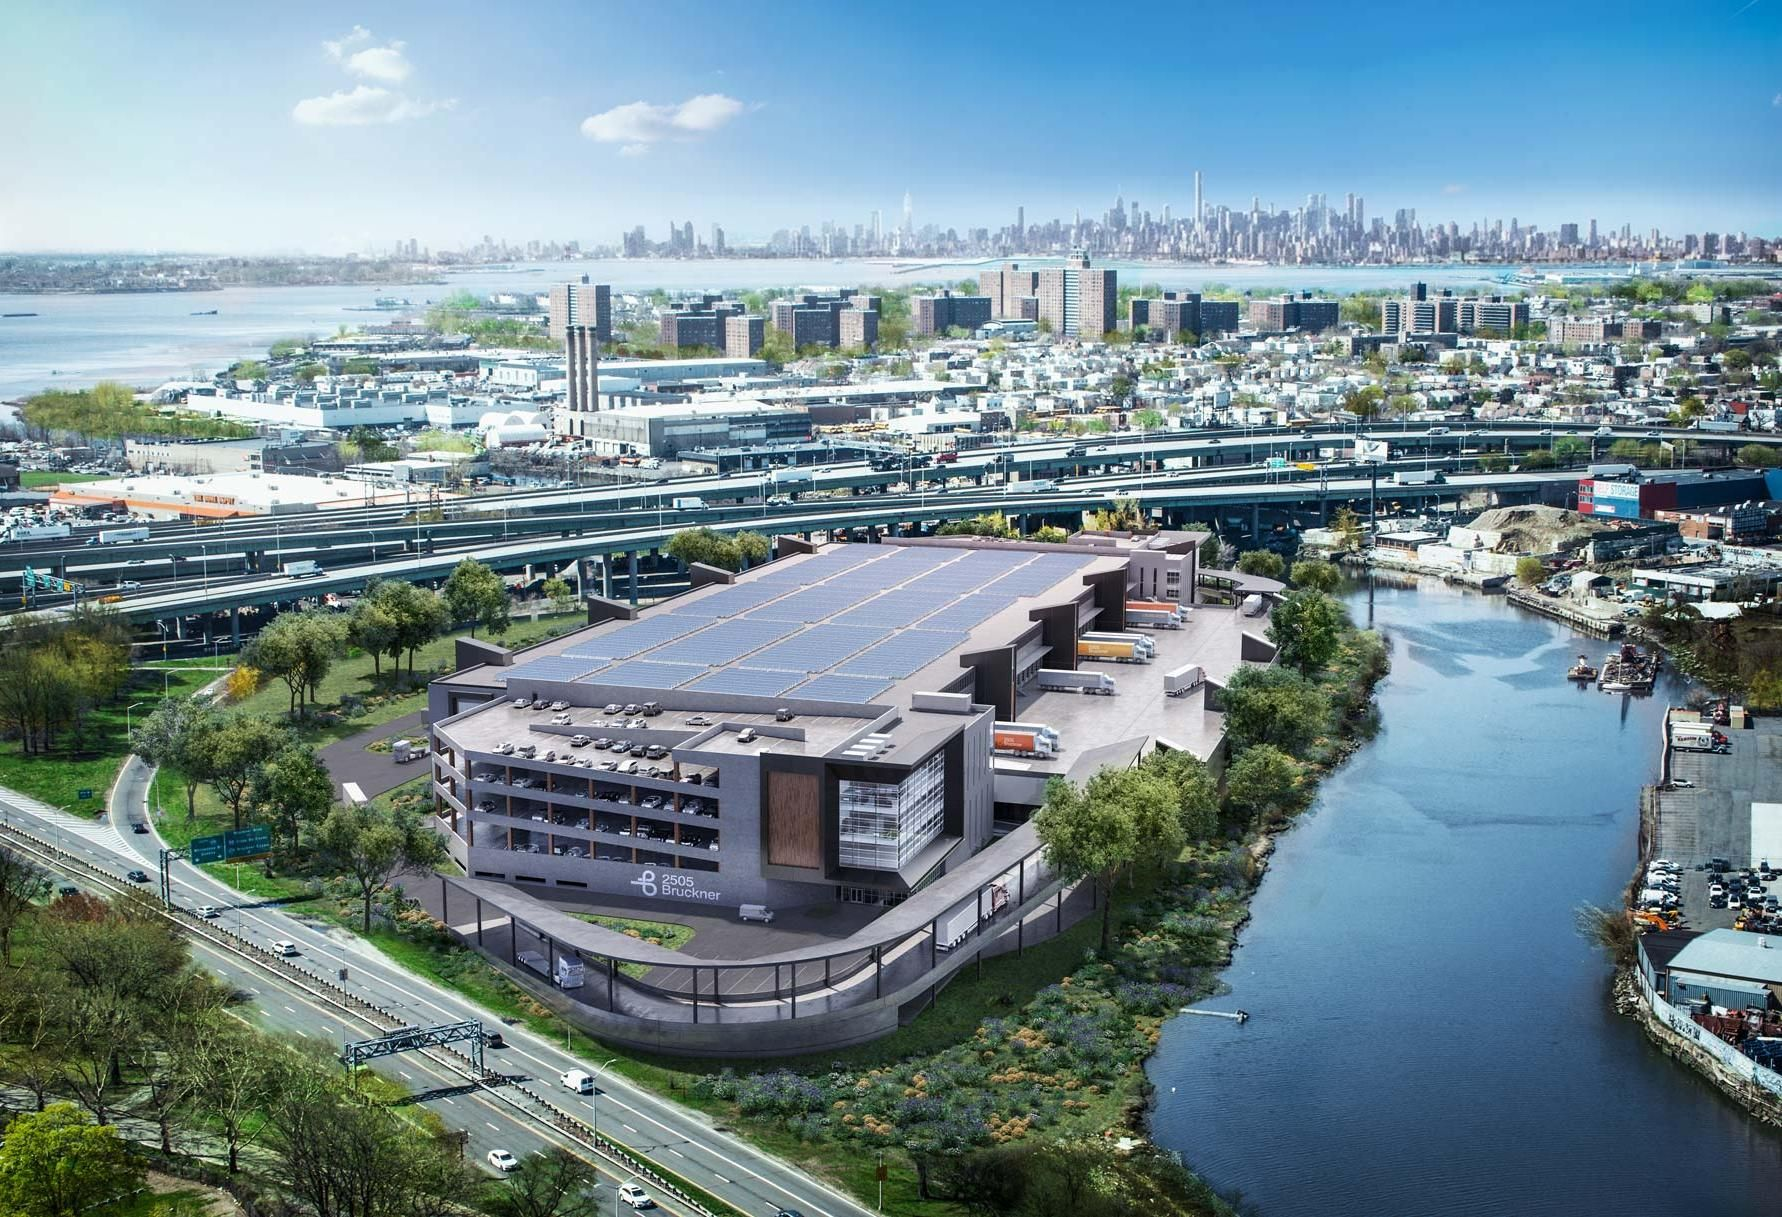 Chasing The Unicorn: Why Industrial Developers Seek Out Elusive Urban Infill Sites